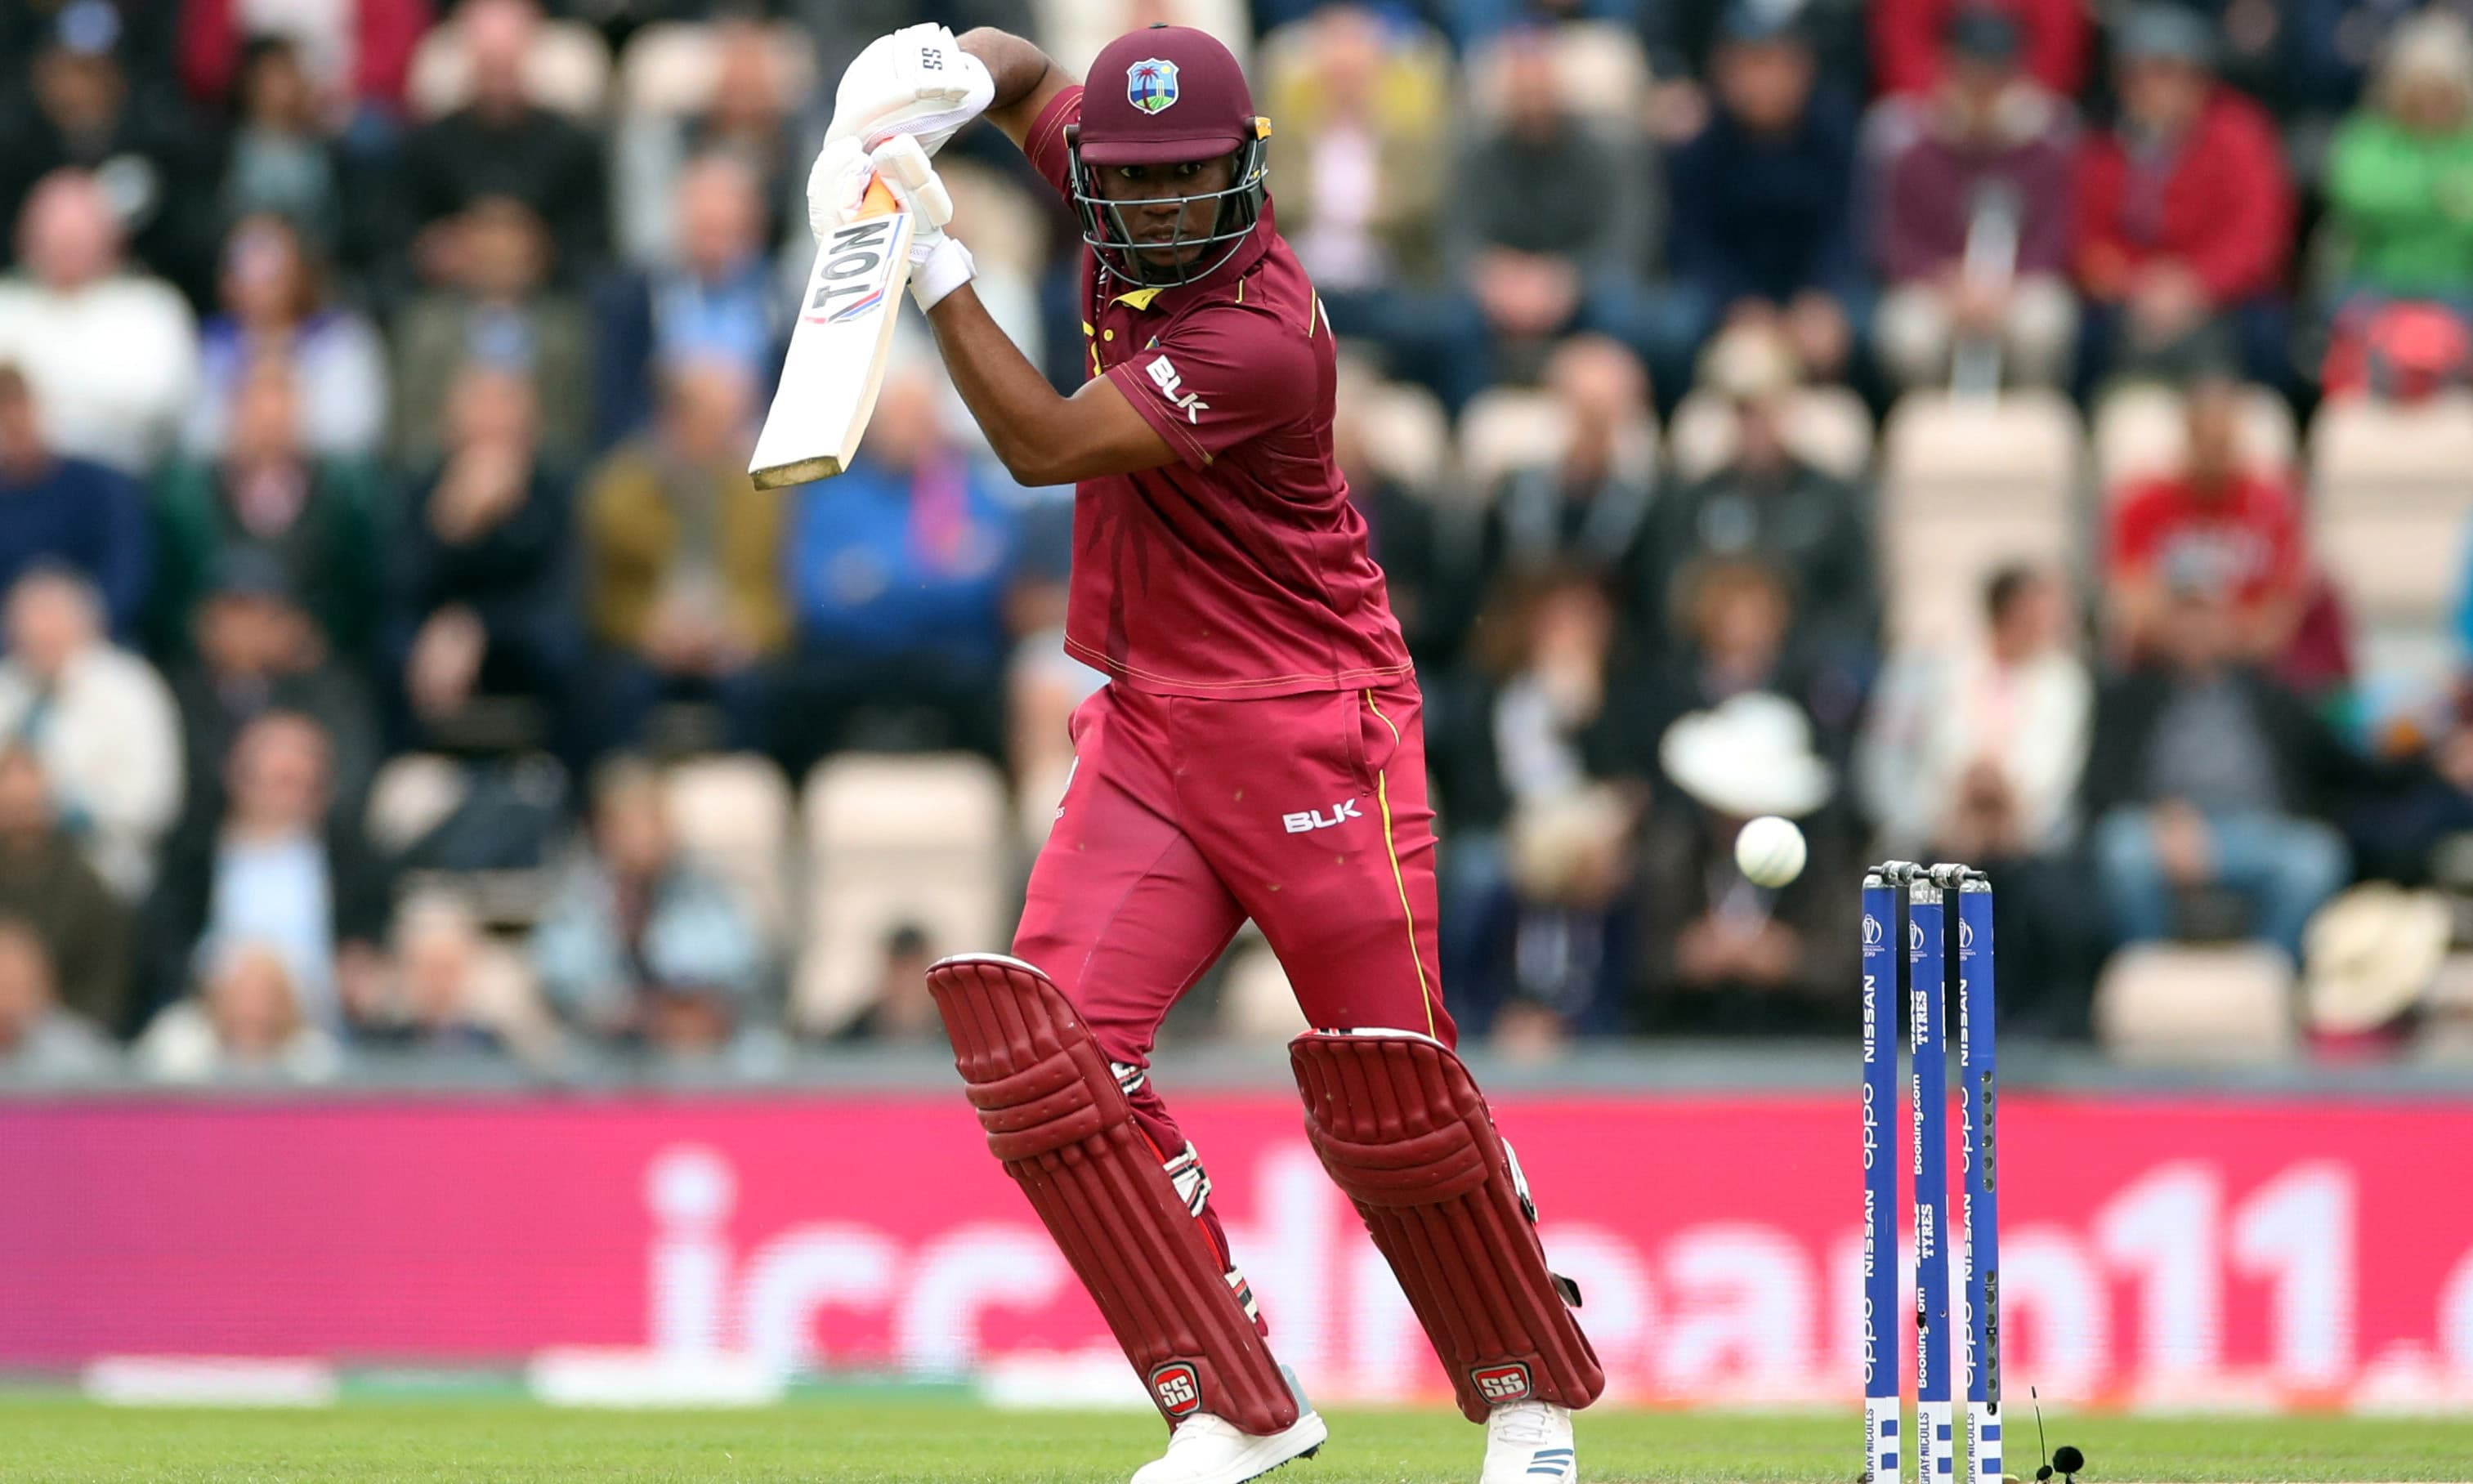 West Indies Evin Lewis in action   Action. — Reuters